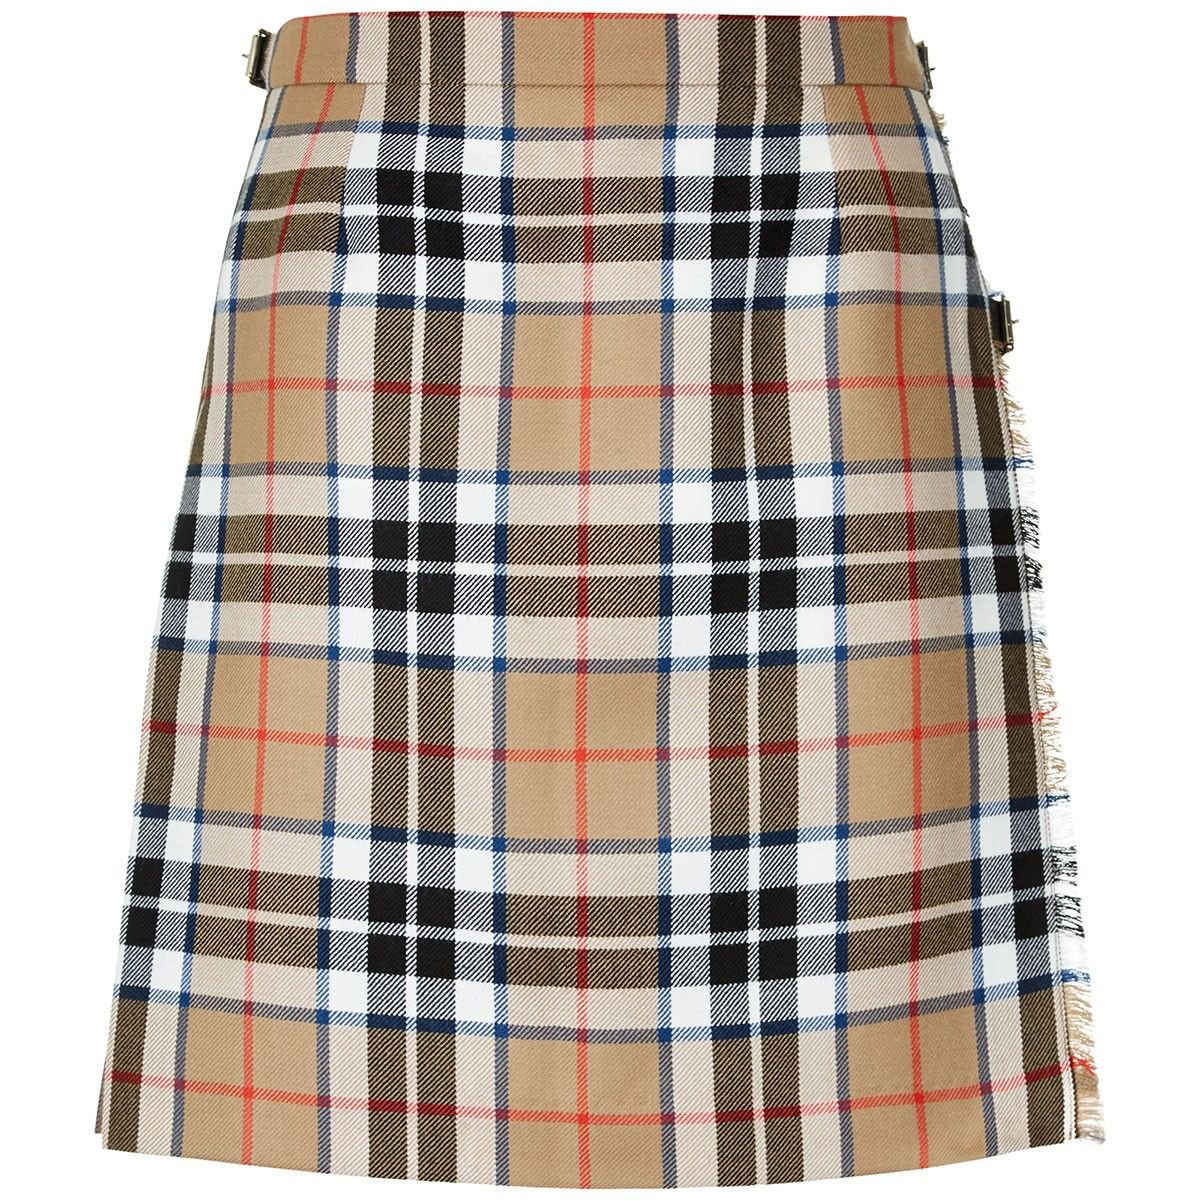 46 Waist New Camel Thompson Ladies Billie Pleated Kilt Knee Length Skirt in Camel Thompson Tartan